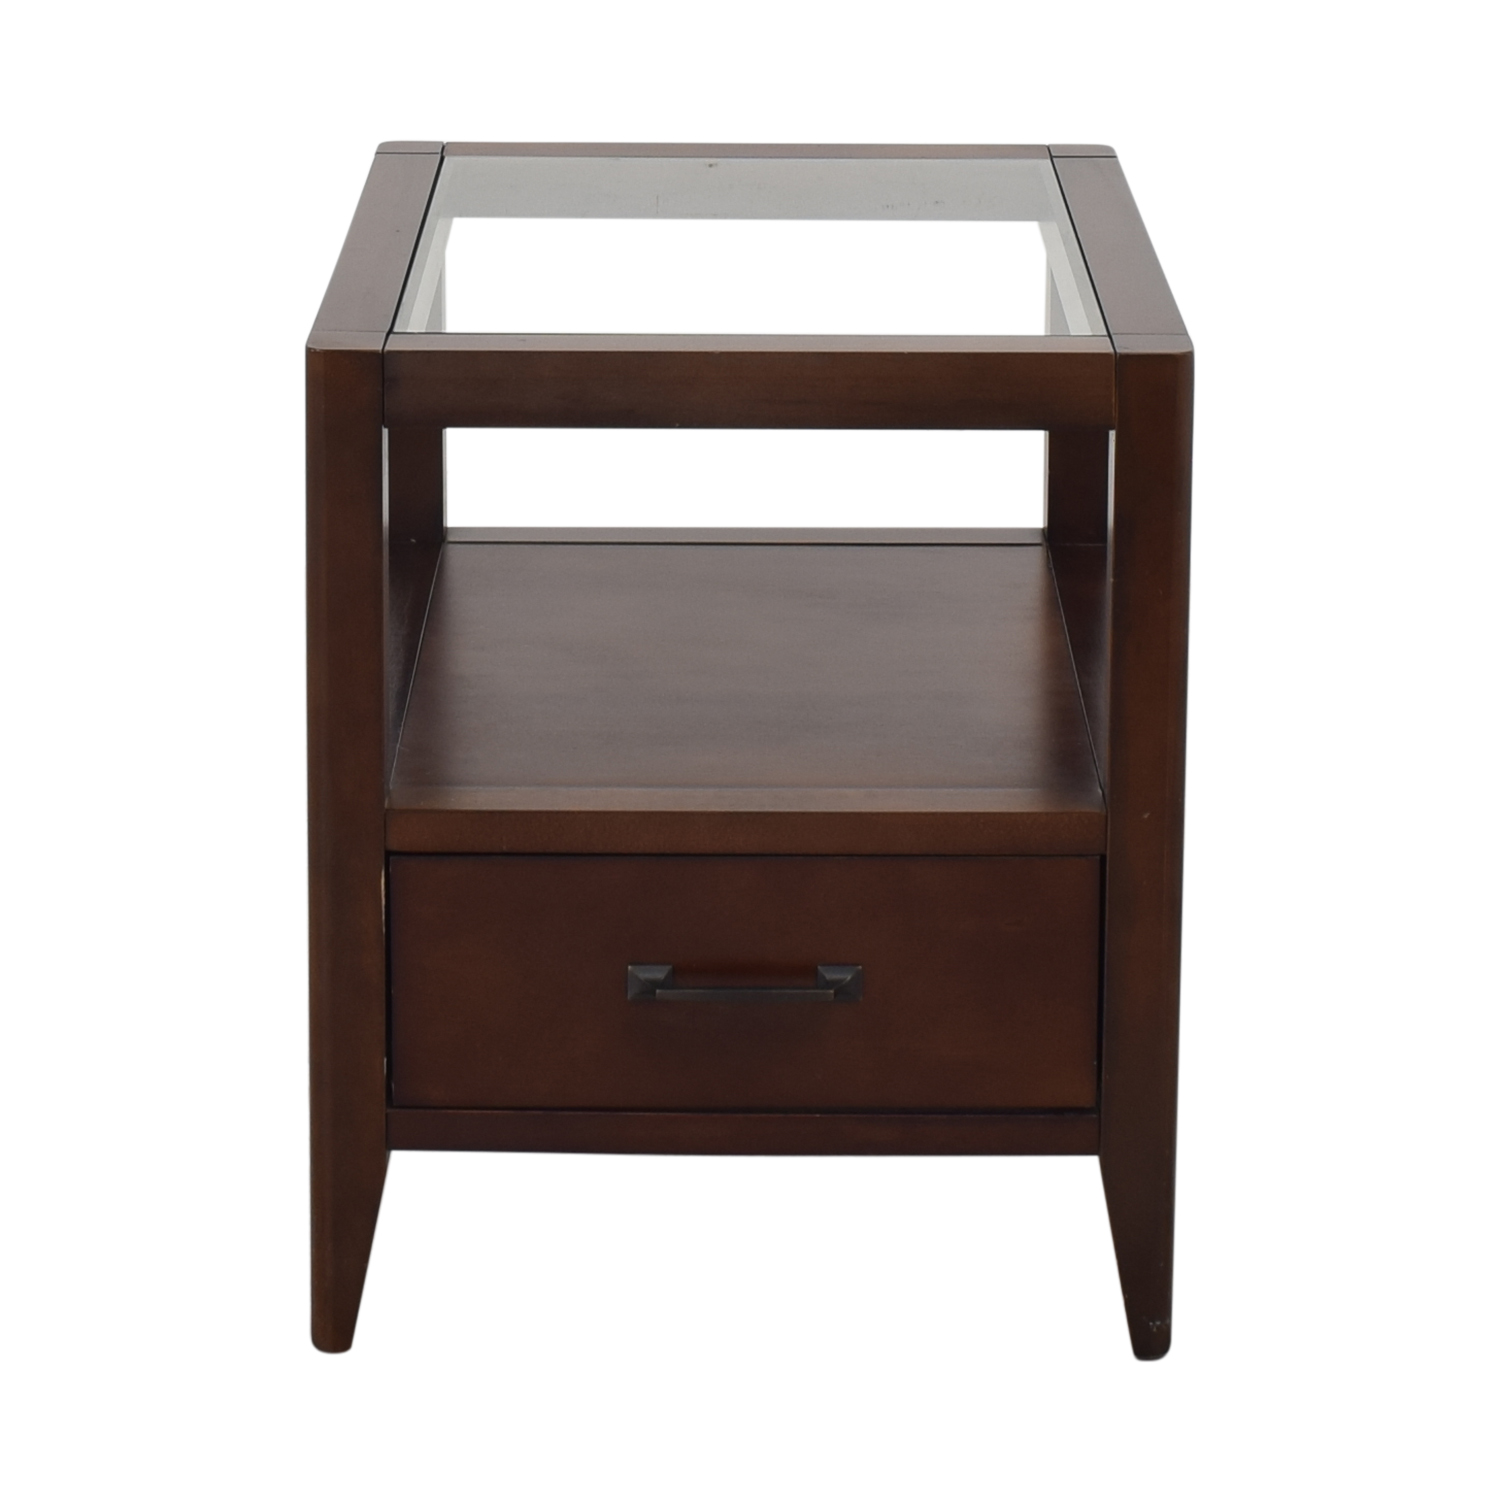 Crate & Barrel Crate & Barrel End Table with Drawer on sale